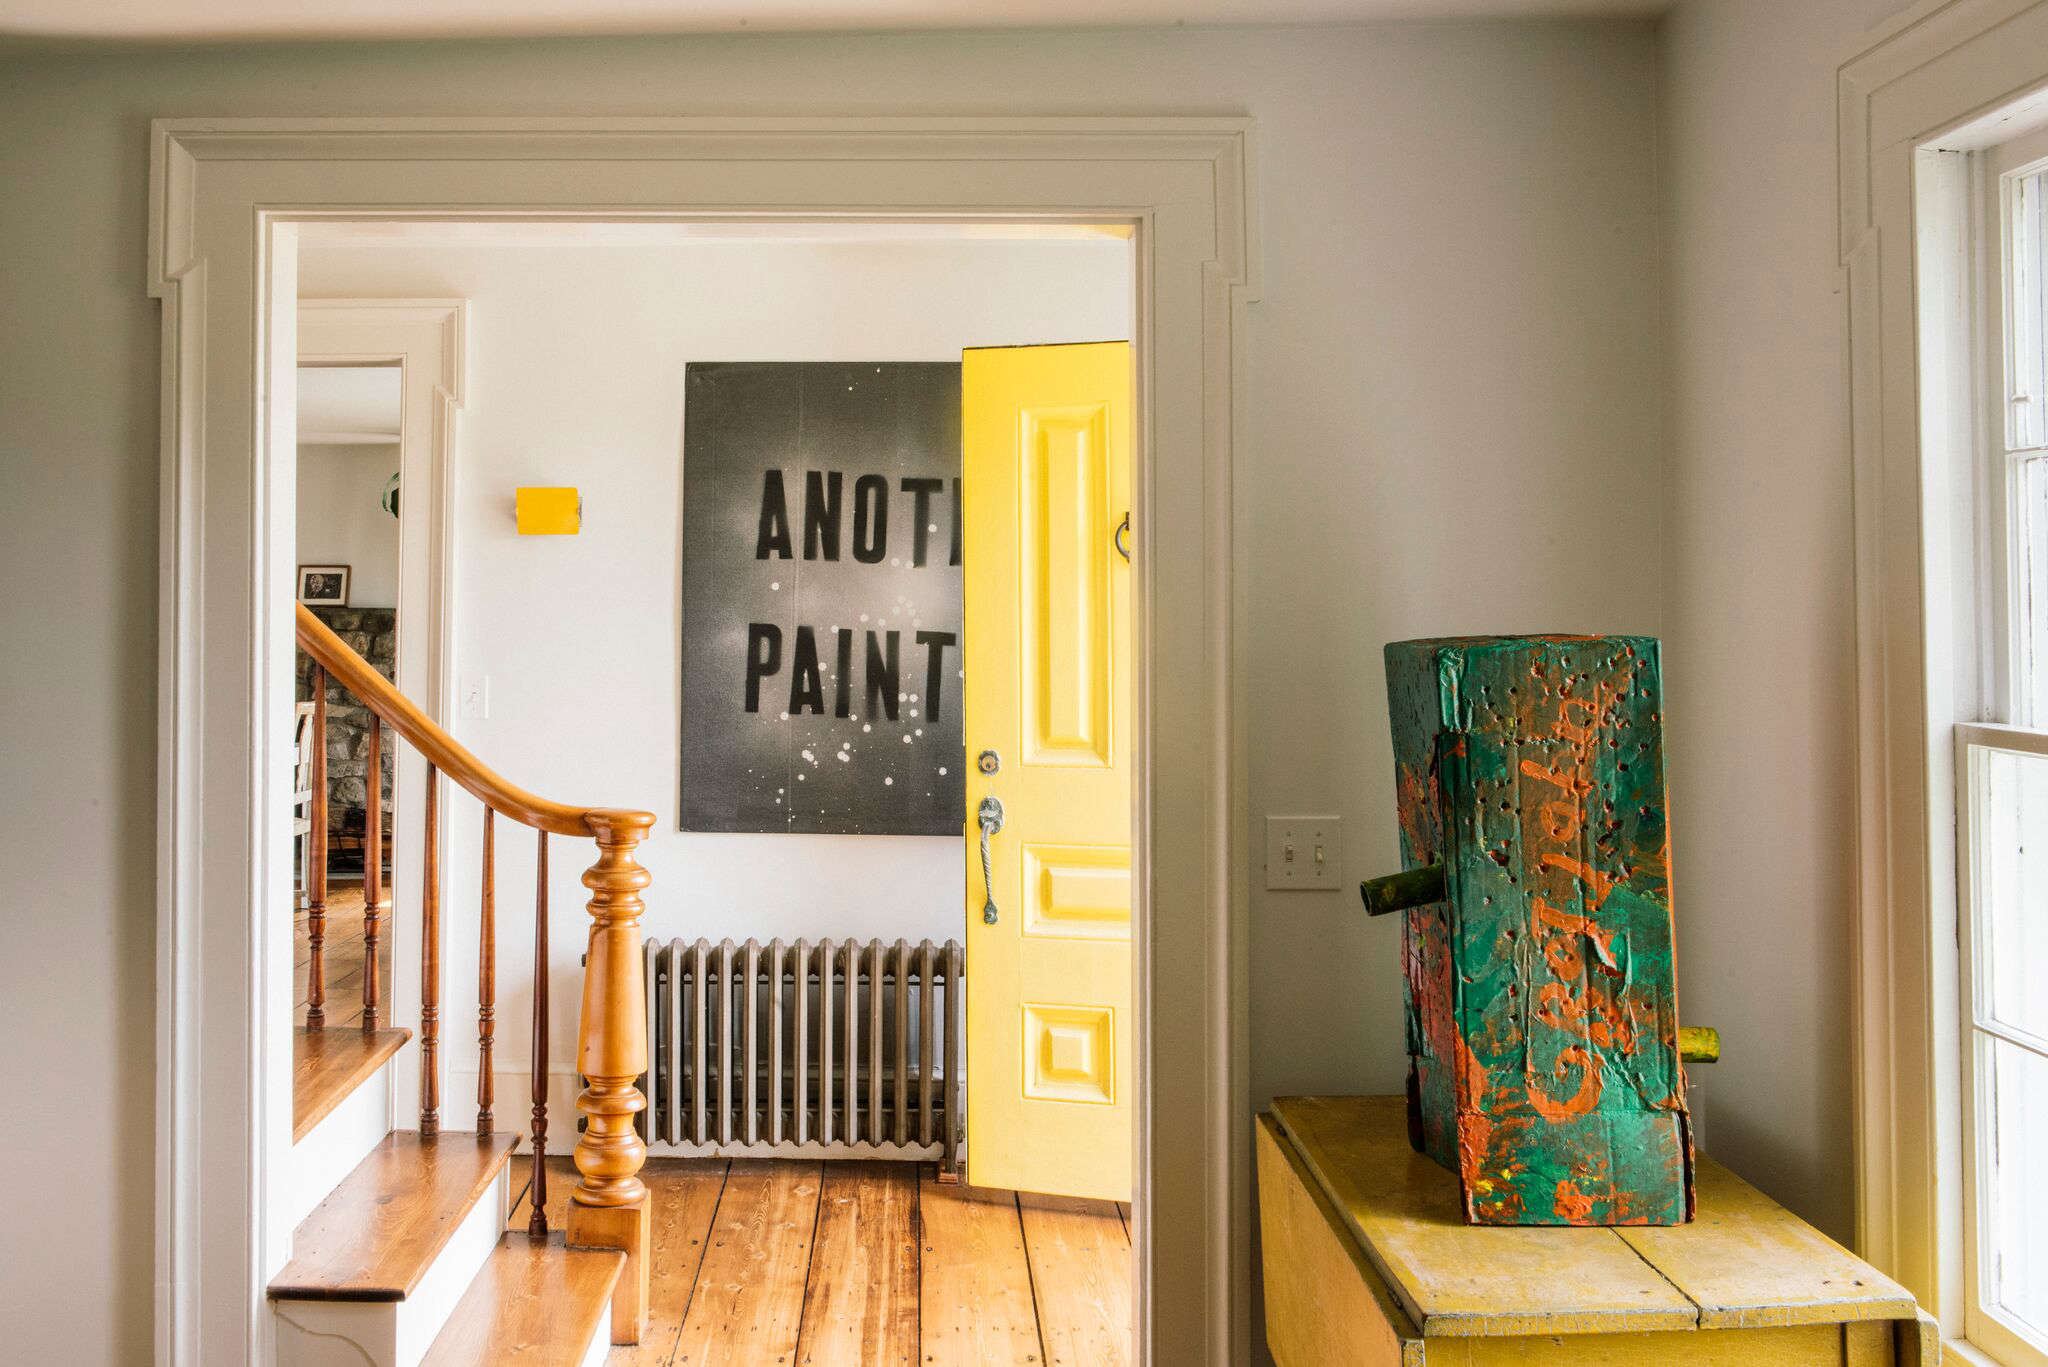 How To Combine A Humble 19th Century Farmhouse And An Edgy Contemporary Art Collection Husband Wife Architects Maria Berman Brad Horn Of